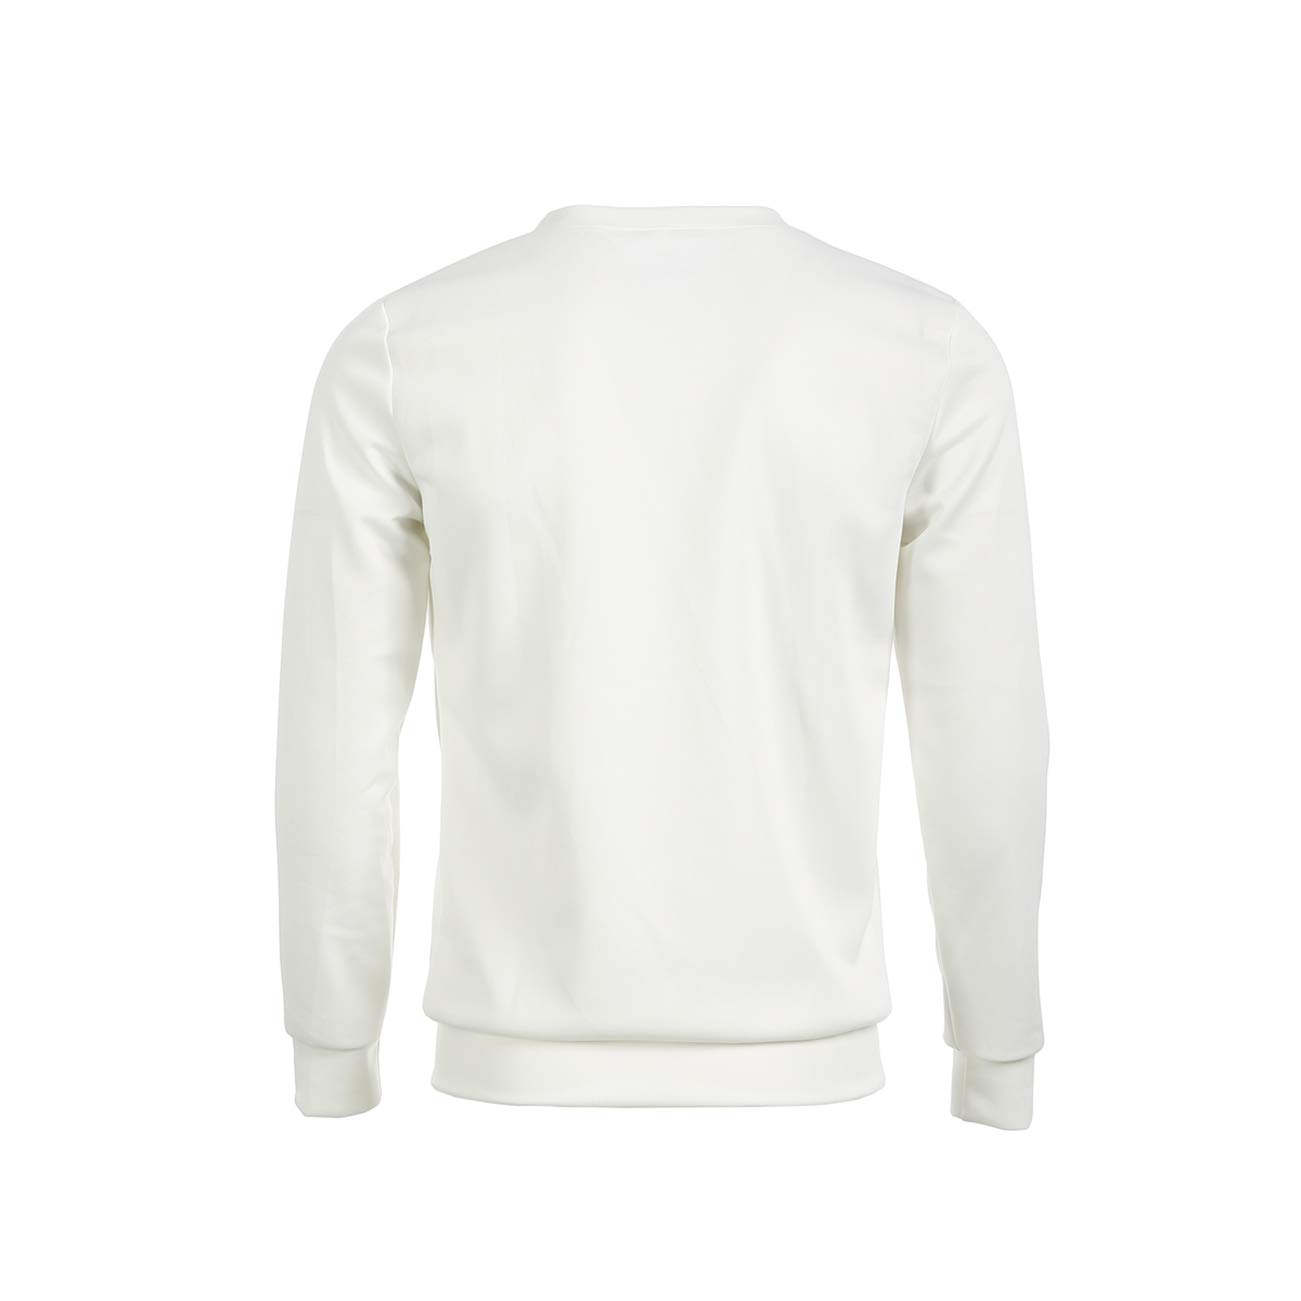 Mens Round Neck Long Sleeve Top Slim Fit T-Shirt Pullover Cotton Blouse Shirt